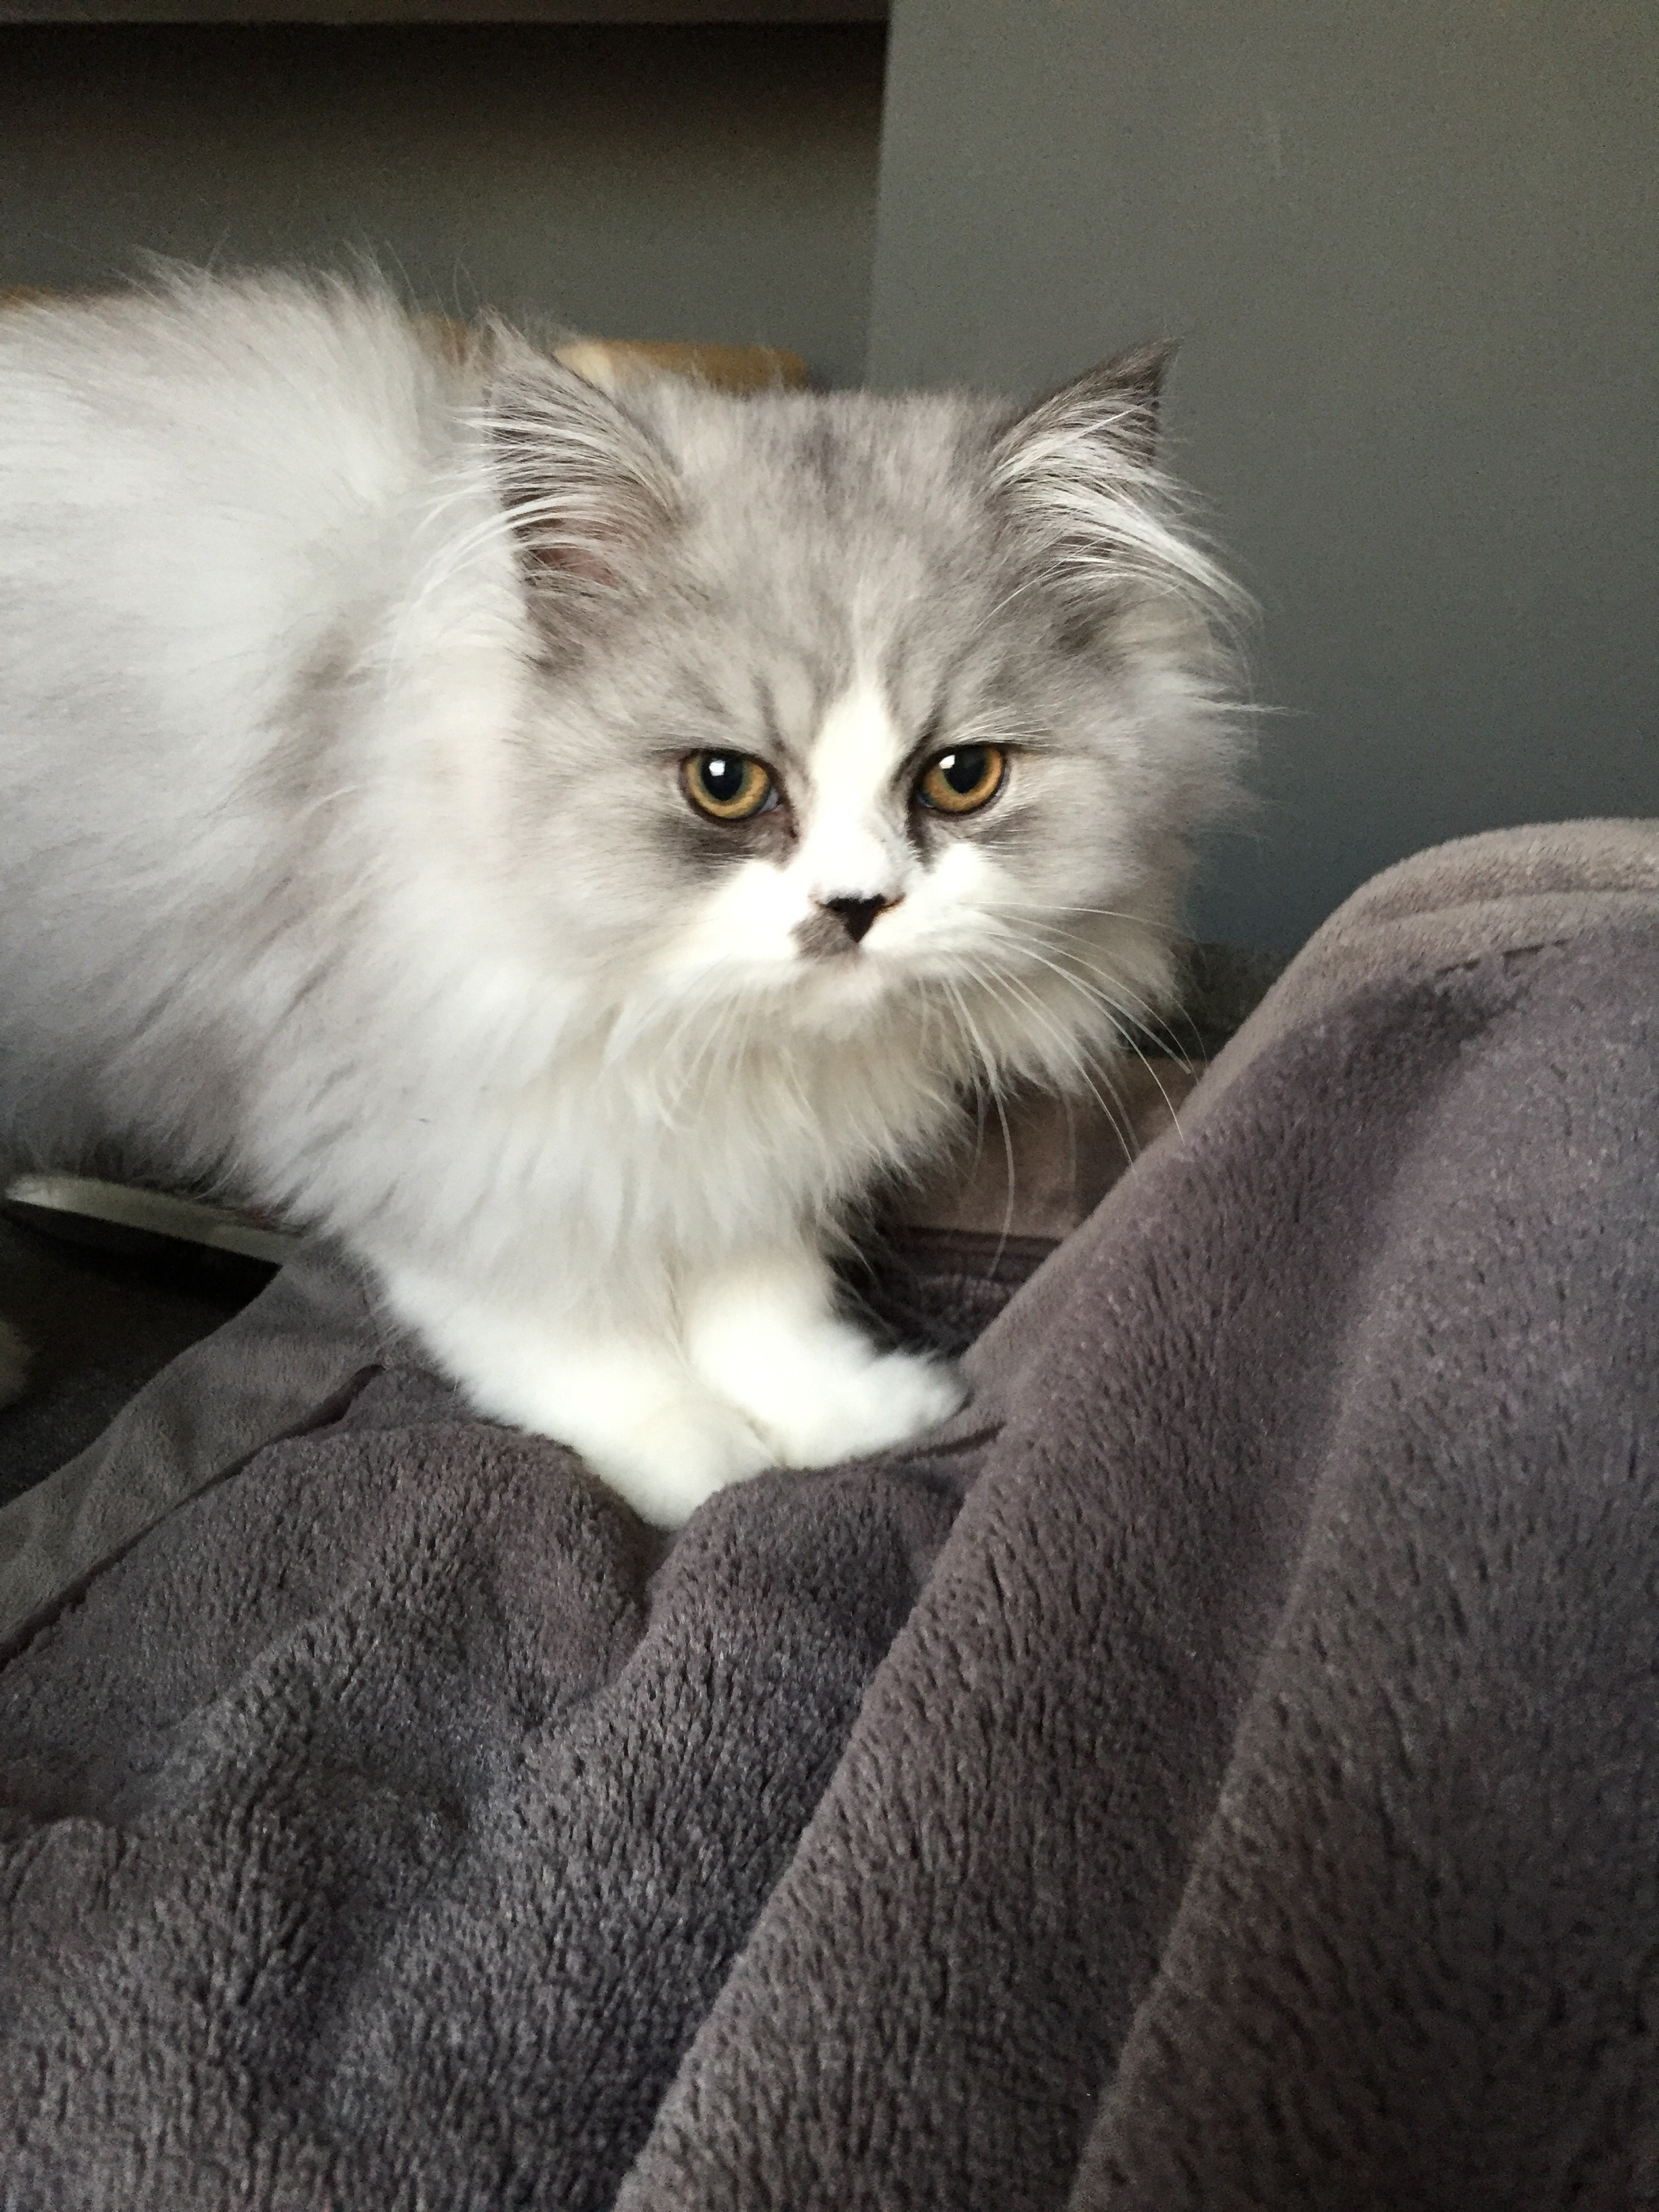 Chinchilla For Sale >> Doll Face Persian Kittens Reviews - Emily & Pete ReviewPre ...